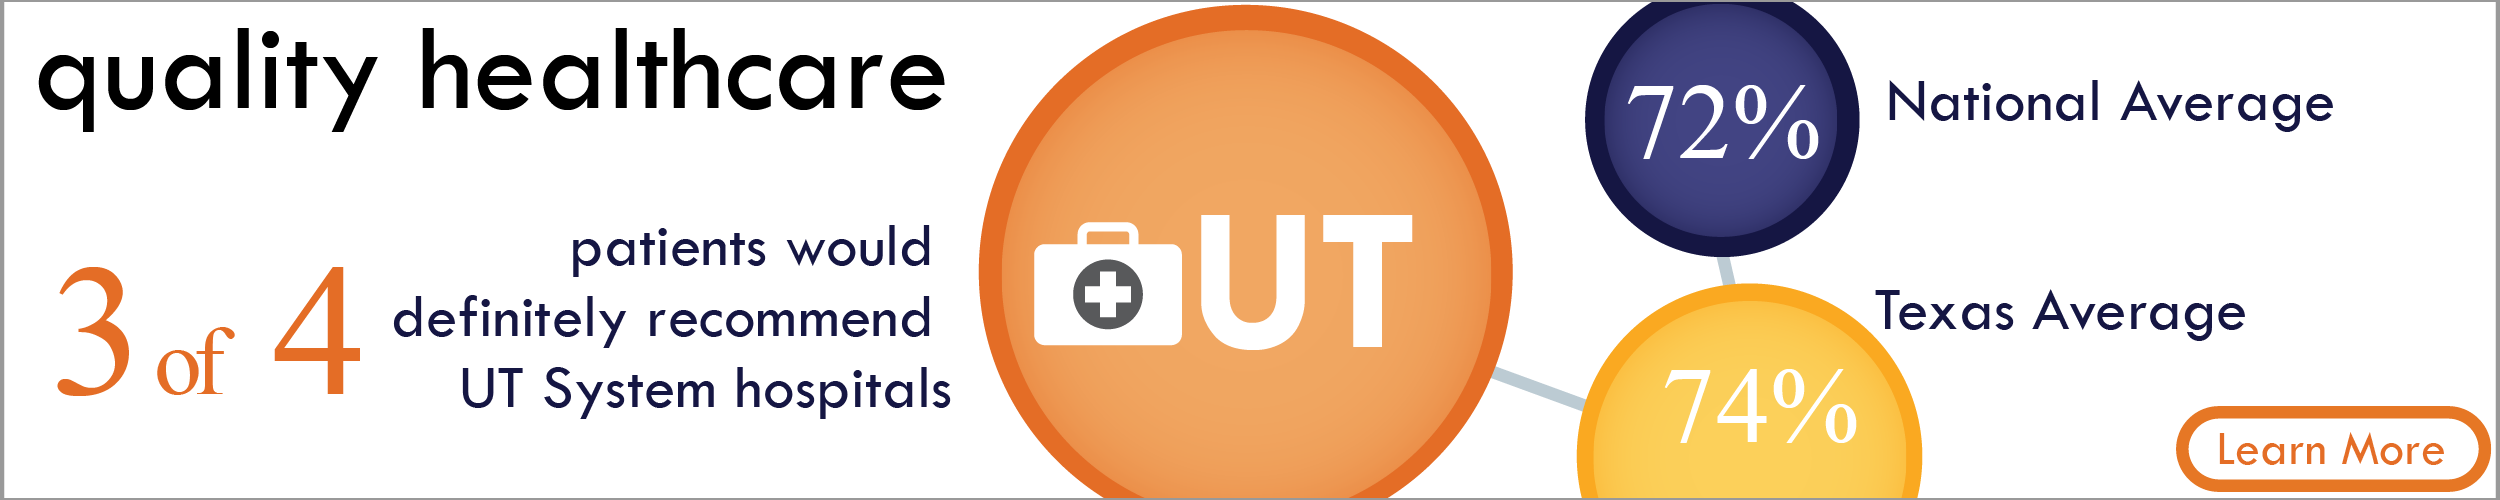 Quality Healthcare. 3 of 4 patients would definitely recommend UT System hospitals. Learn more.